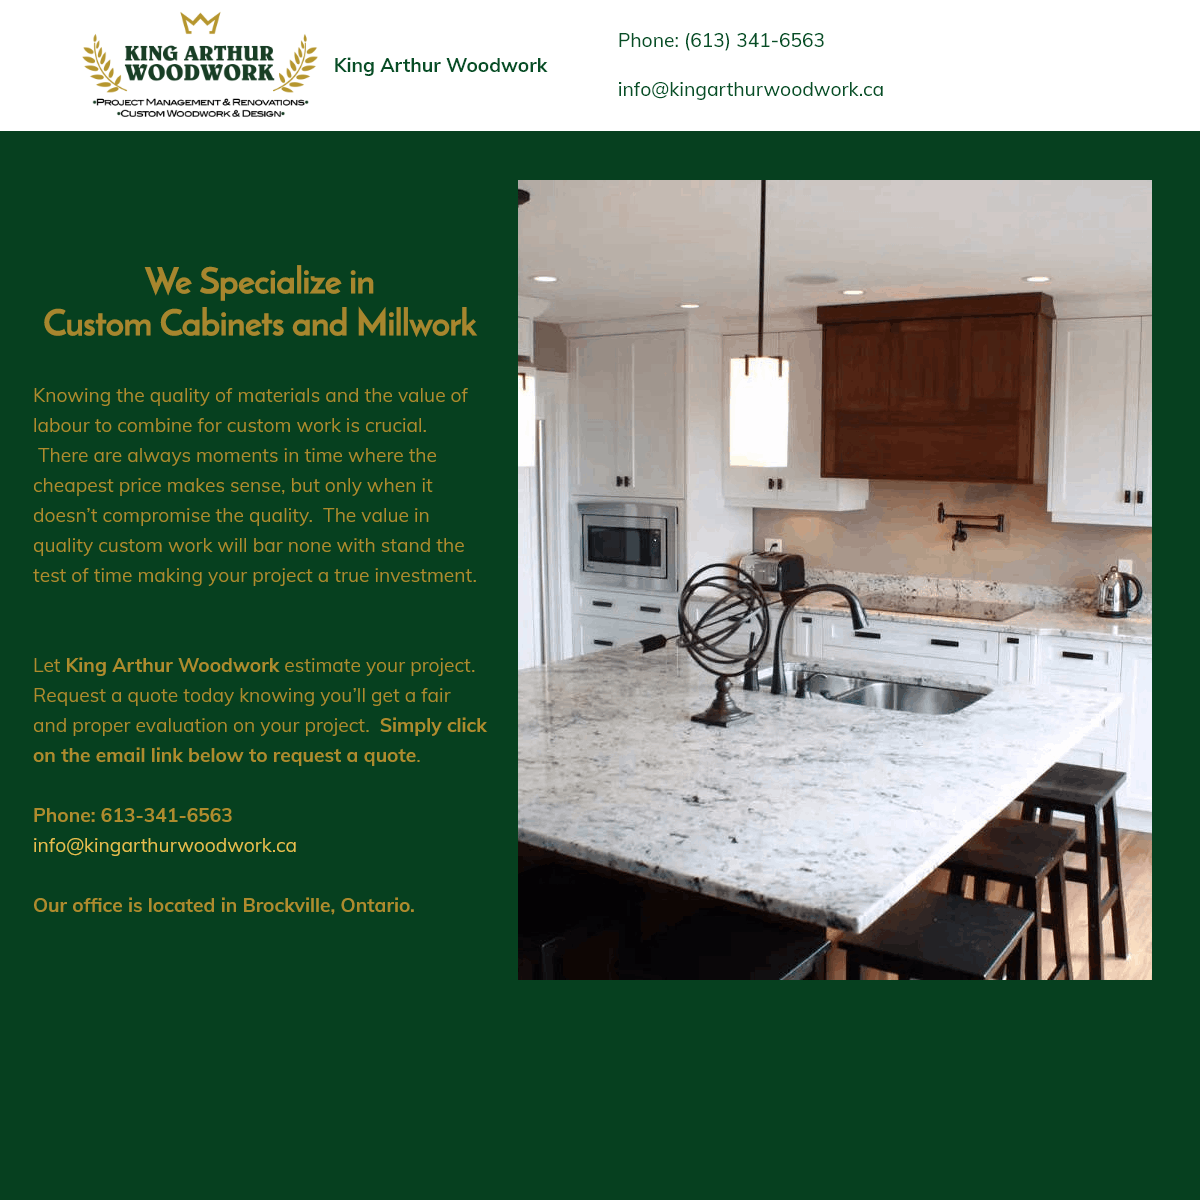 King Arthur Woodwork - Custom Cabinets and Millwork